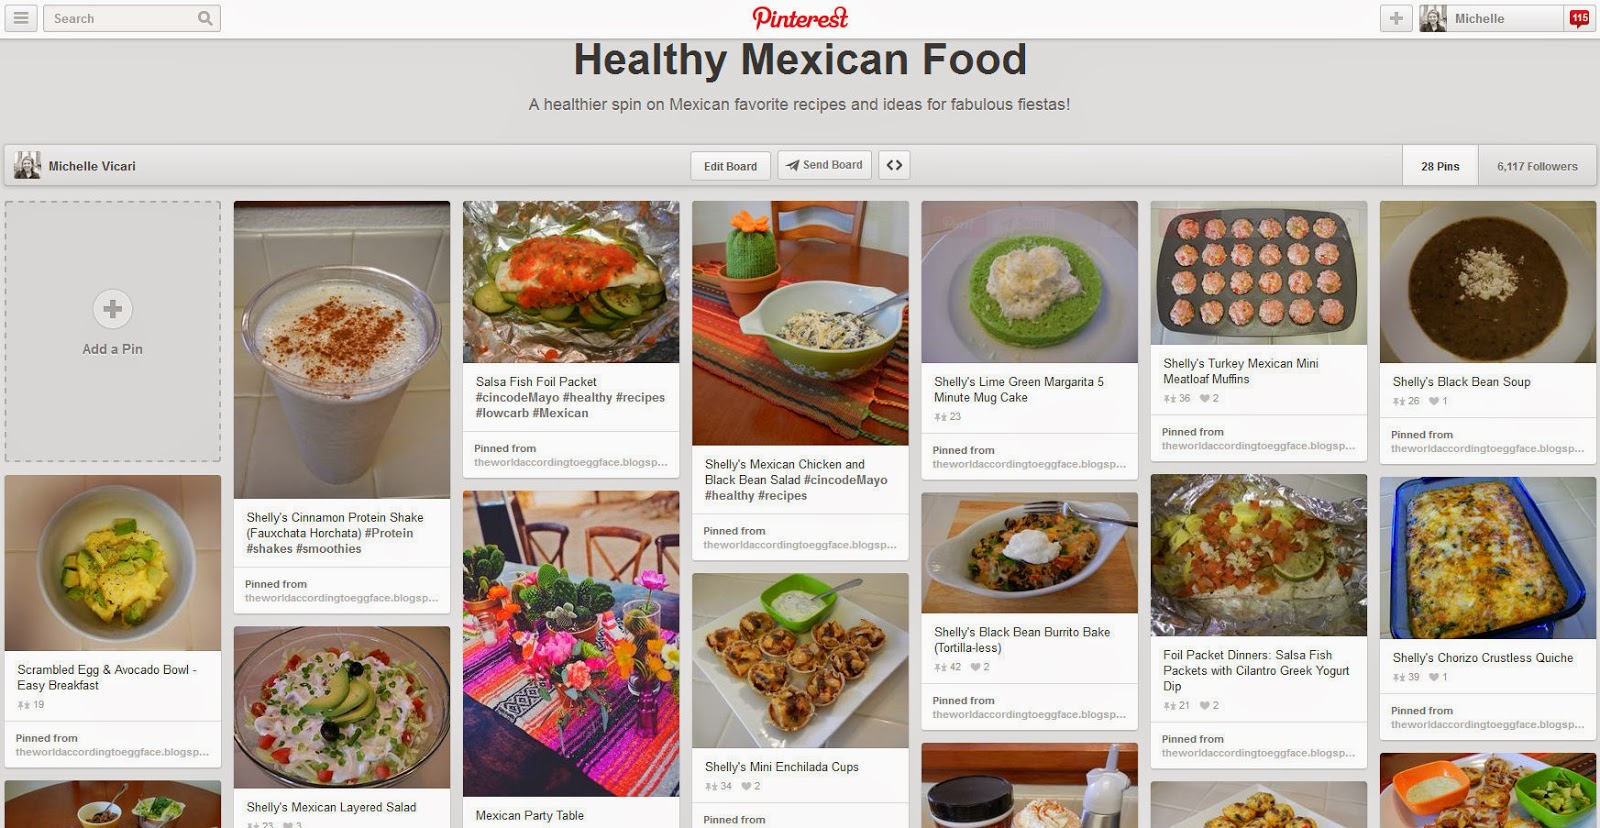 http://www.pinterest.com/eggface/healthy-mexican-food/